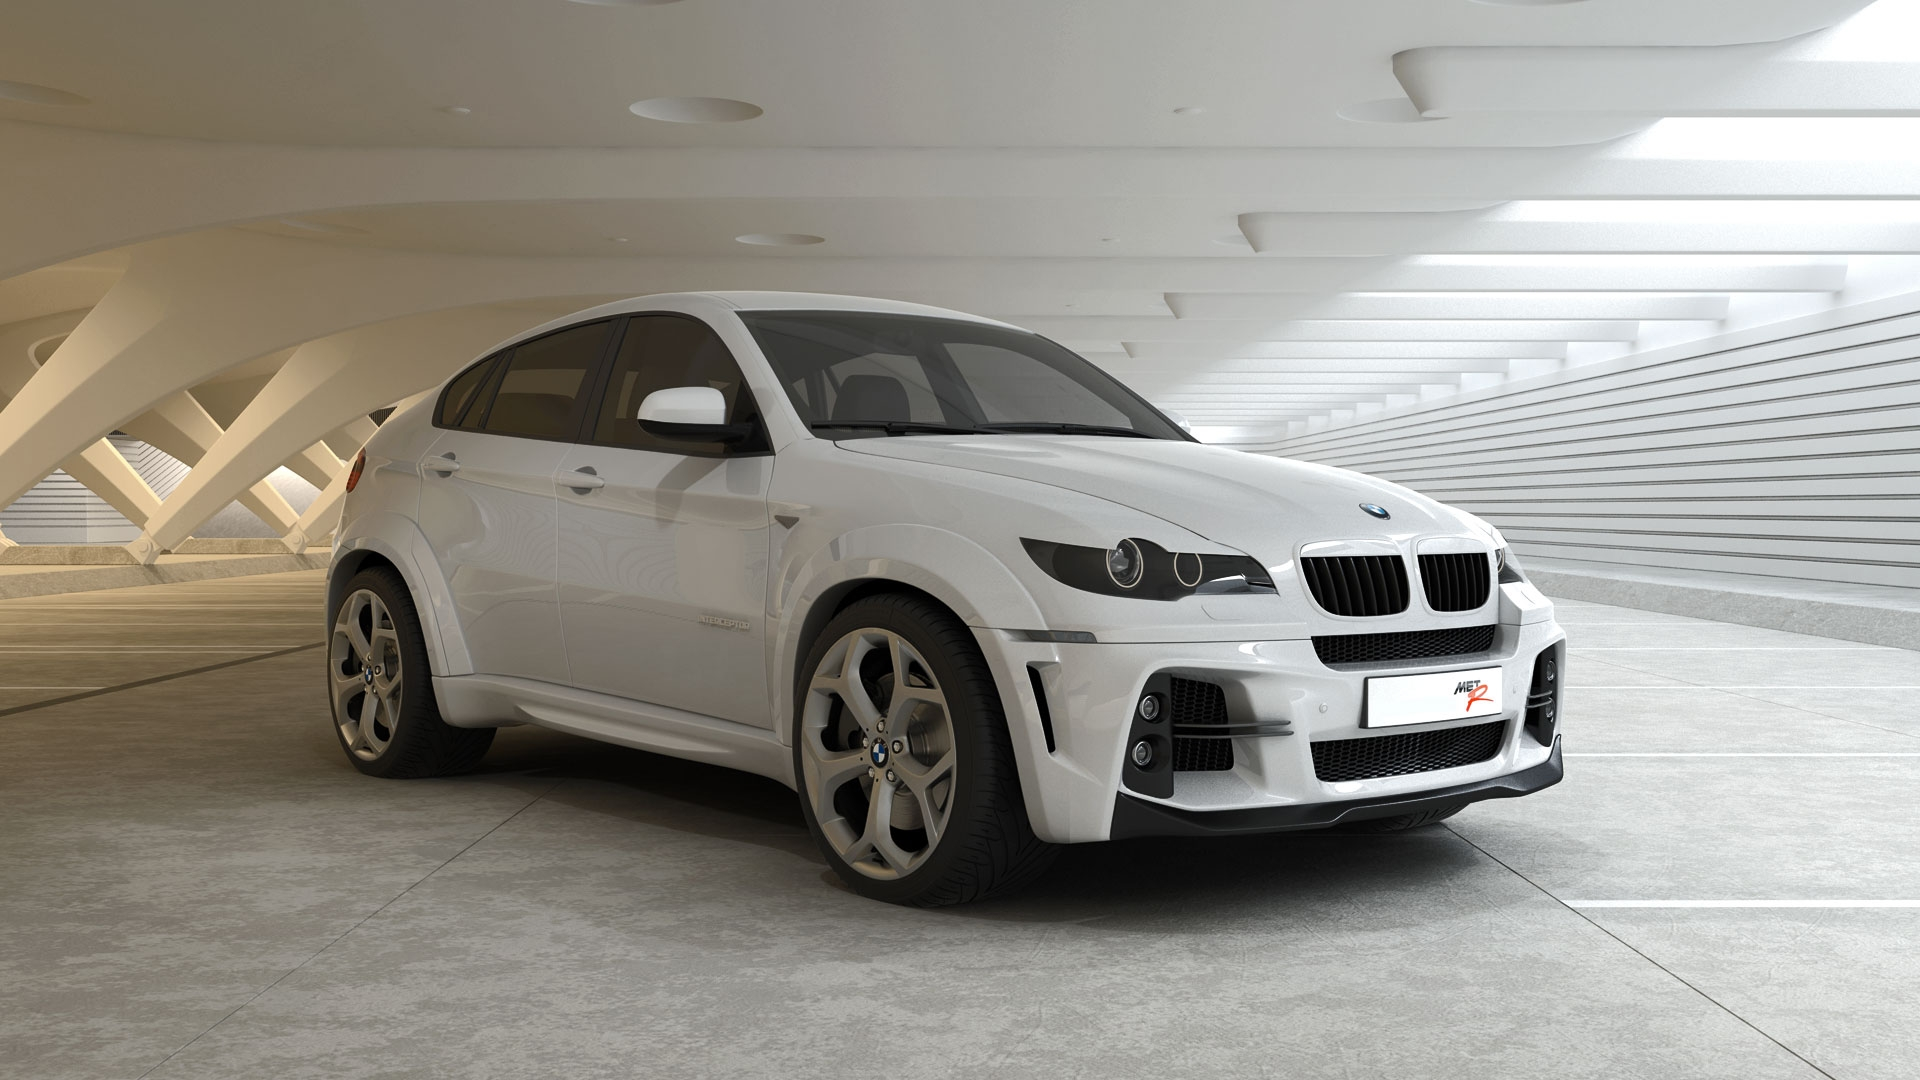 231 best dream cars bmw x6 images on pinterest bmw x6 bmw cars and dream cars